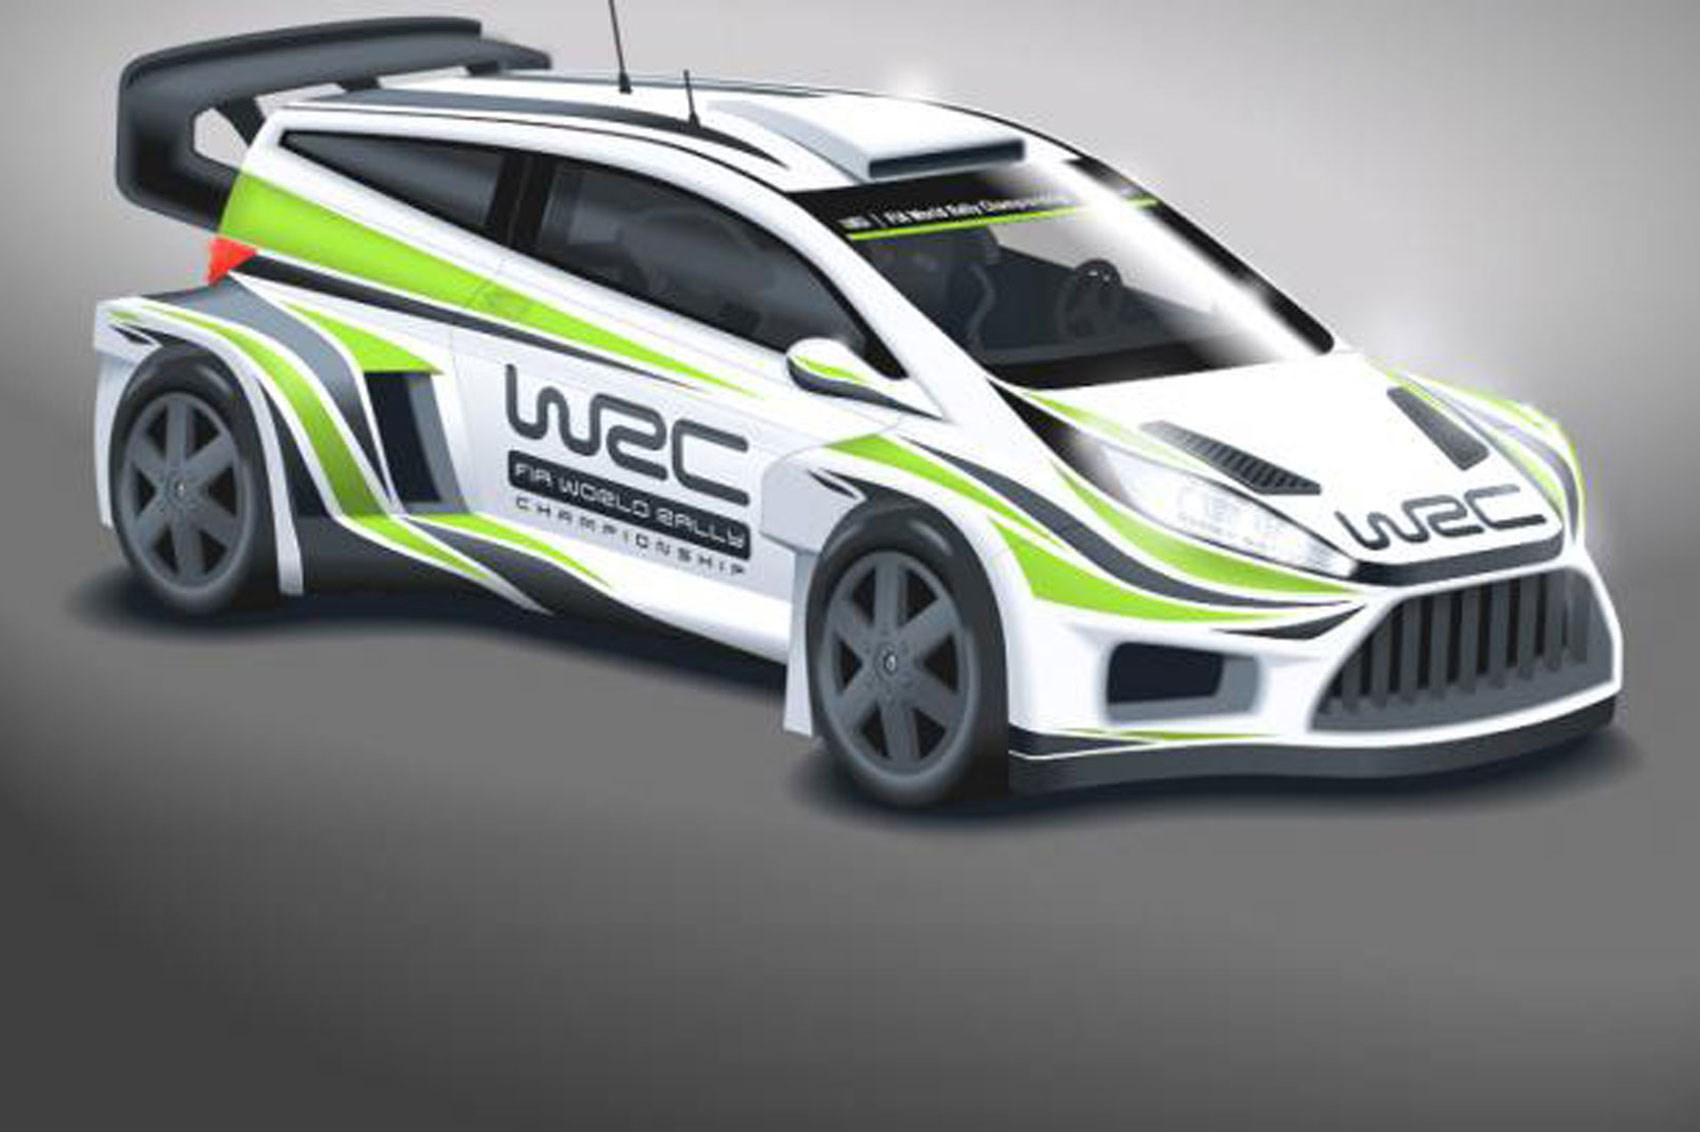 Ultrablogus  Picturesque Wild New Look For Wrc Cars In  By Car Magazine With Goodlooking Wrc Cars Will Get Wider Bodies Bigger Wings And More Power For  With Charming Mercedes Cls Interior Also Interior Of Ford Kuga In Addition Bugatti Veyron Supersport Interior And Interior Vw Scirocco As Well As Vw Up Interior Additionally Audi S Interior From Carmagazinecouk With Ultrablogus  Goodlooking Wild New Look For Wrc Cars In  By Car Magazine With Charming Wrc Cars Will Get Wider Bodies Bigger Wings And More Power For  And Picturesque Mercedes Cls Interior Also Interior Of Ford Kuga In Addition Bugatti Veyron Supersport Interior From Carmagazinecouk